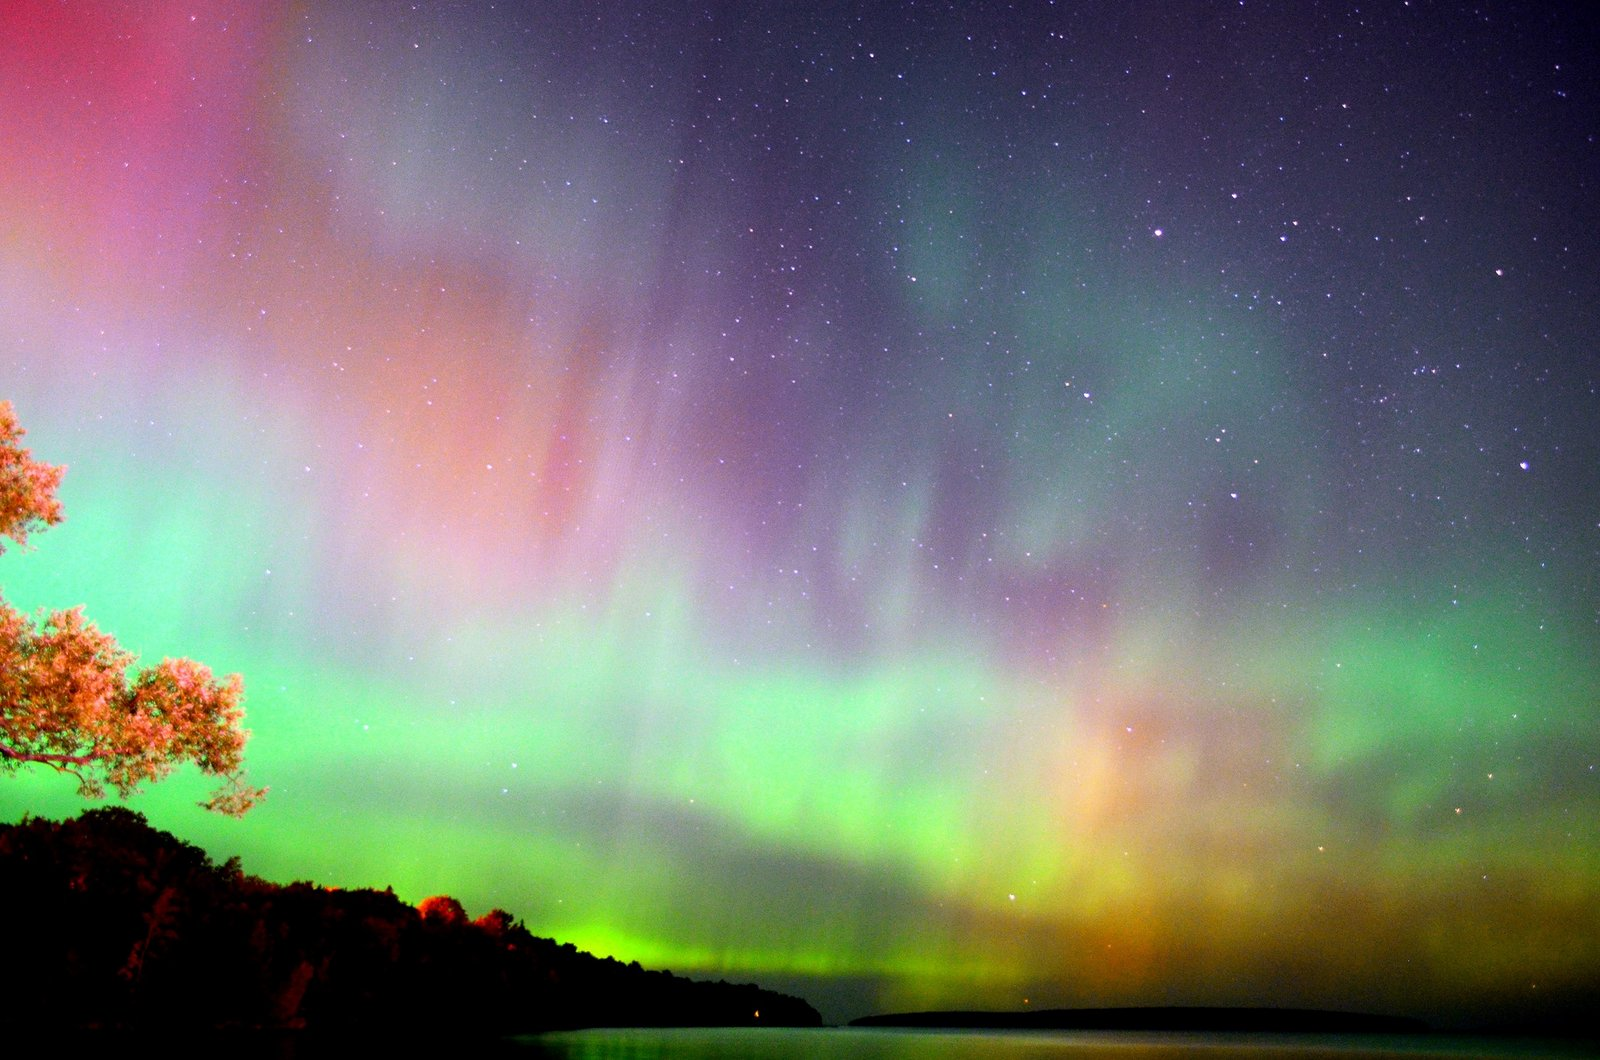 Aurora Borealis. From Bayfield, Wisconsin on the south shore of Lake Superior by Katrina Werchouski